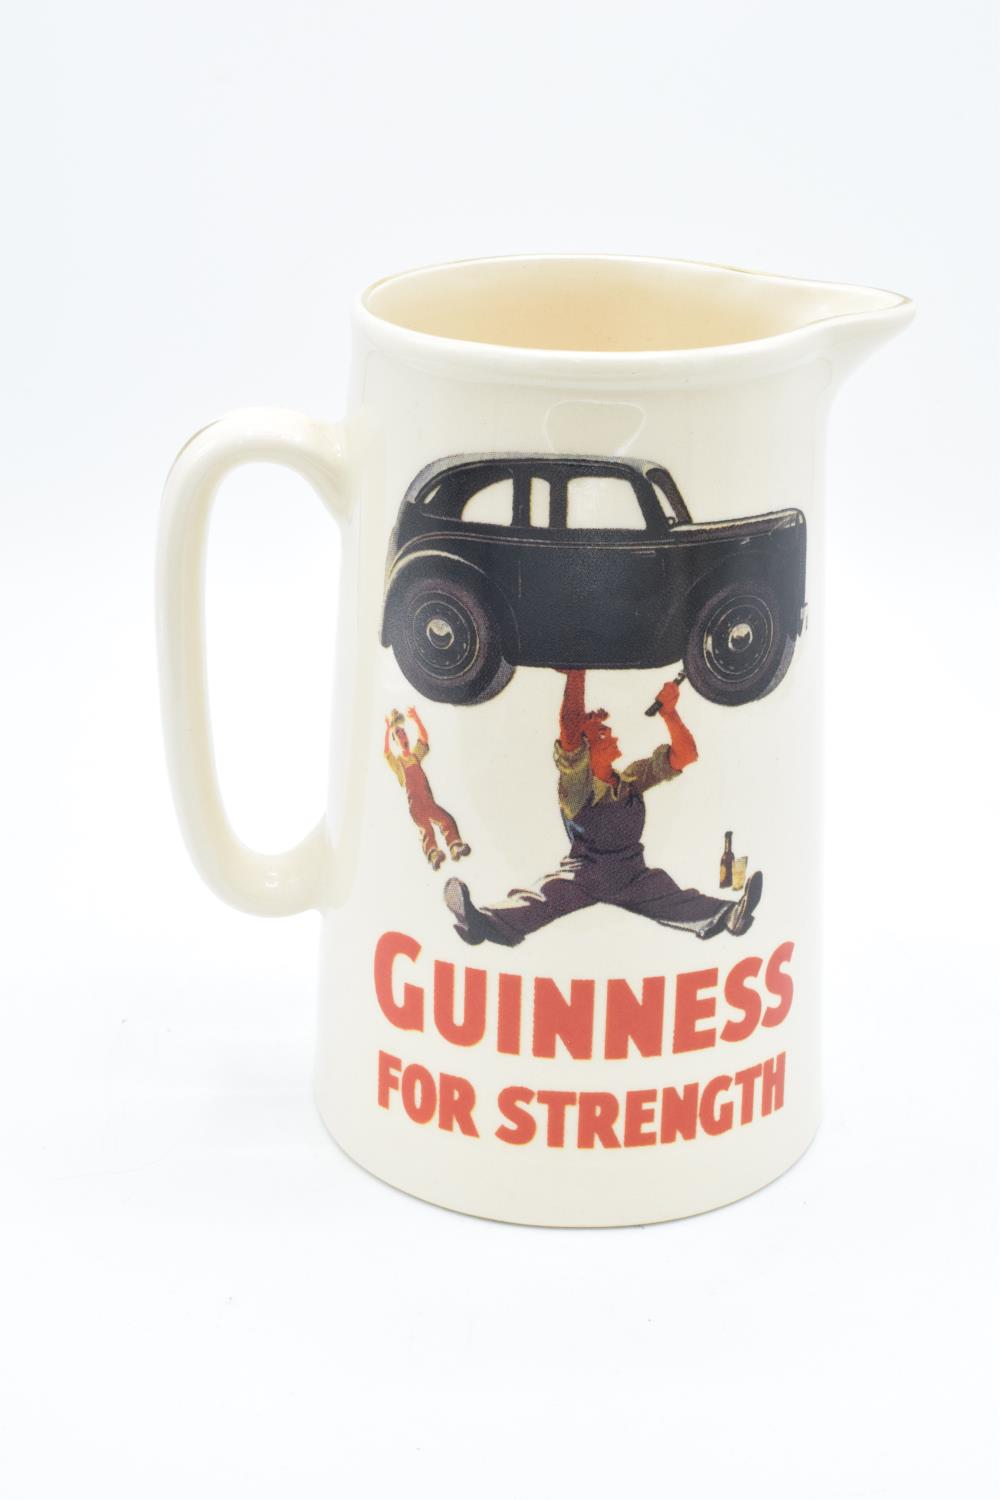 Guinness pub advertising jug 'Guinness for Strength'. In good condition with no obvious damage or - Image 2 of 3